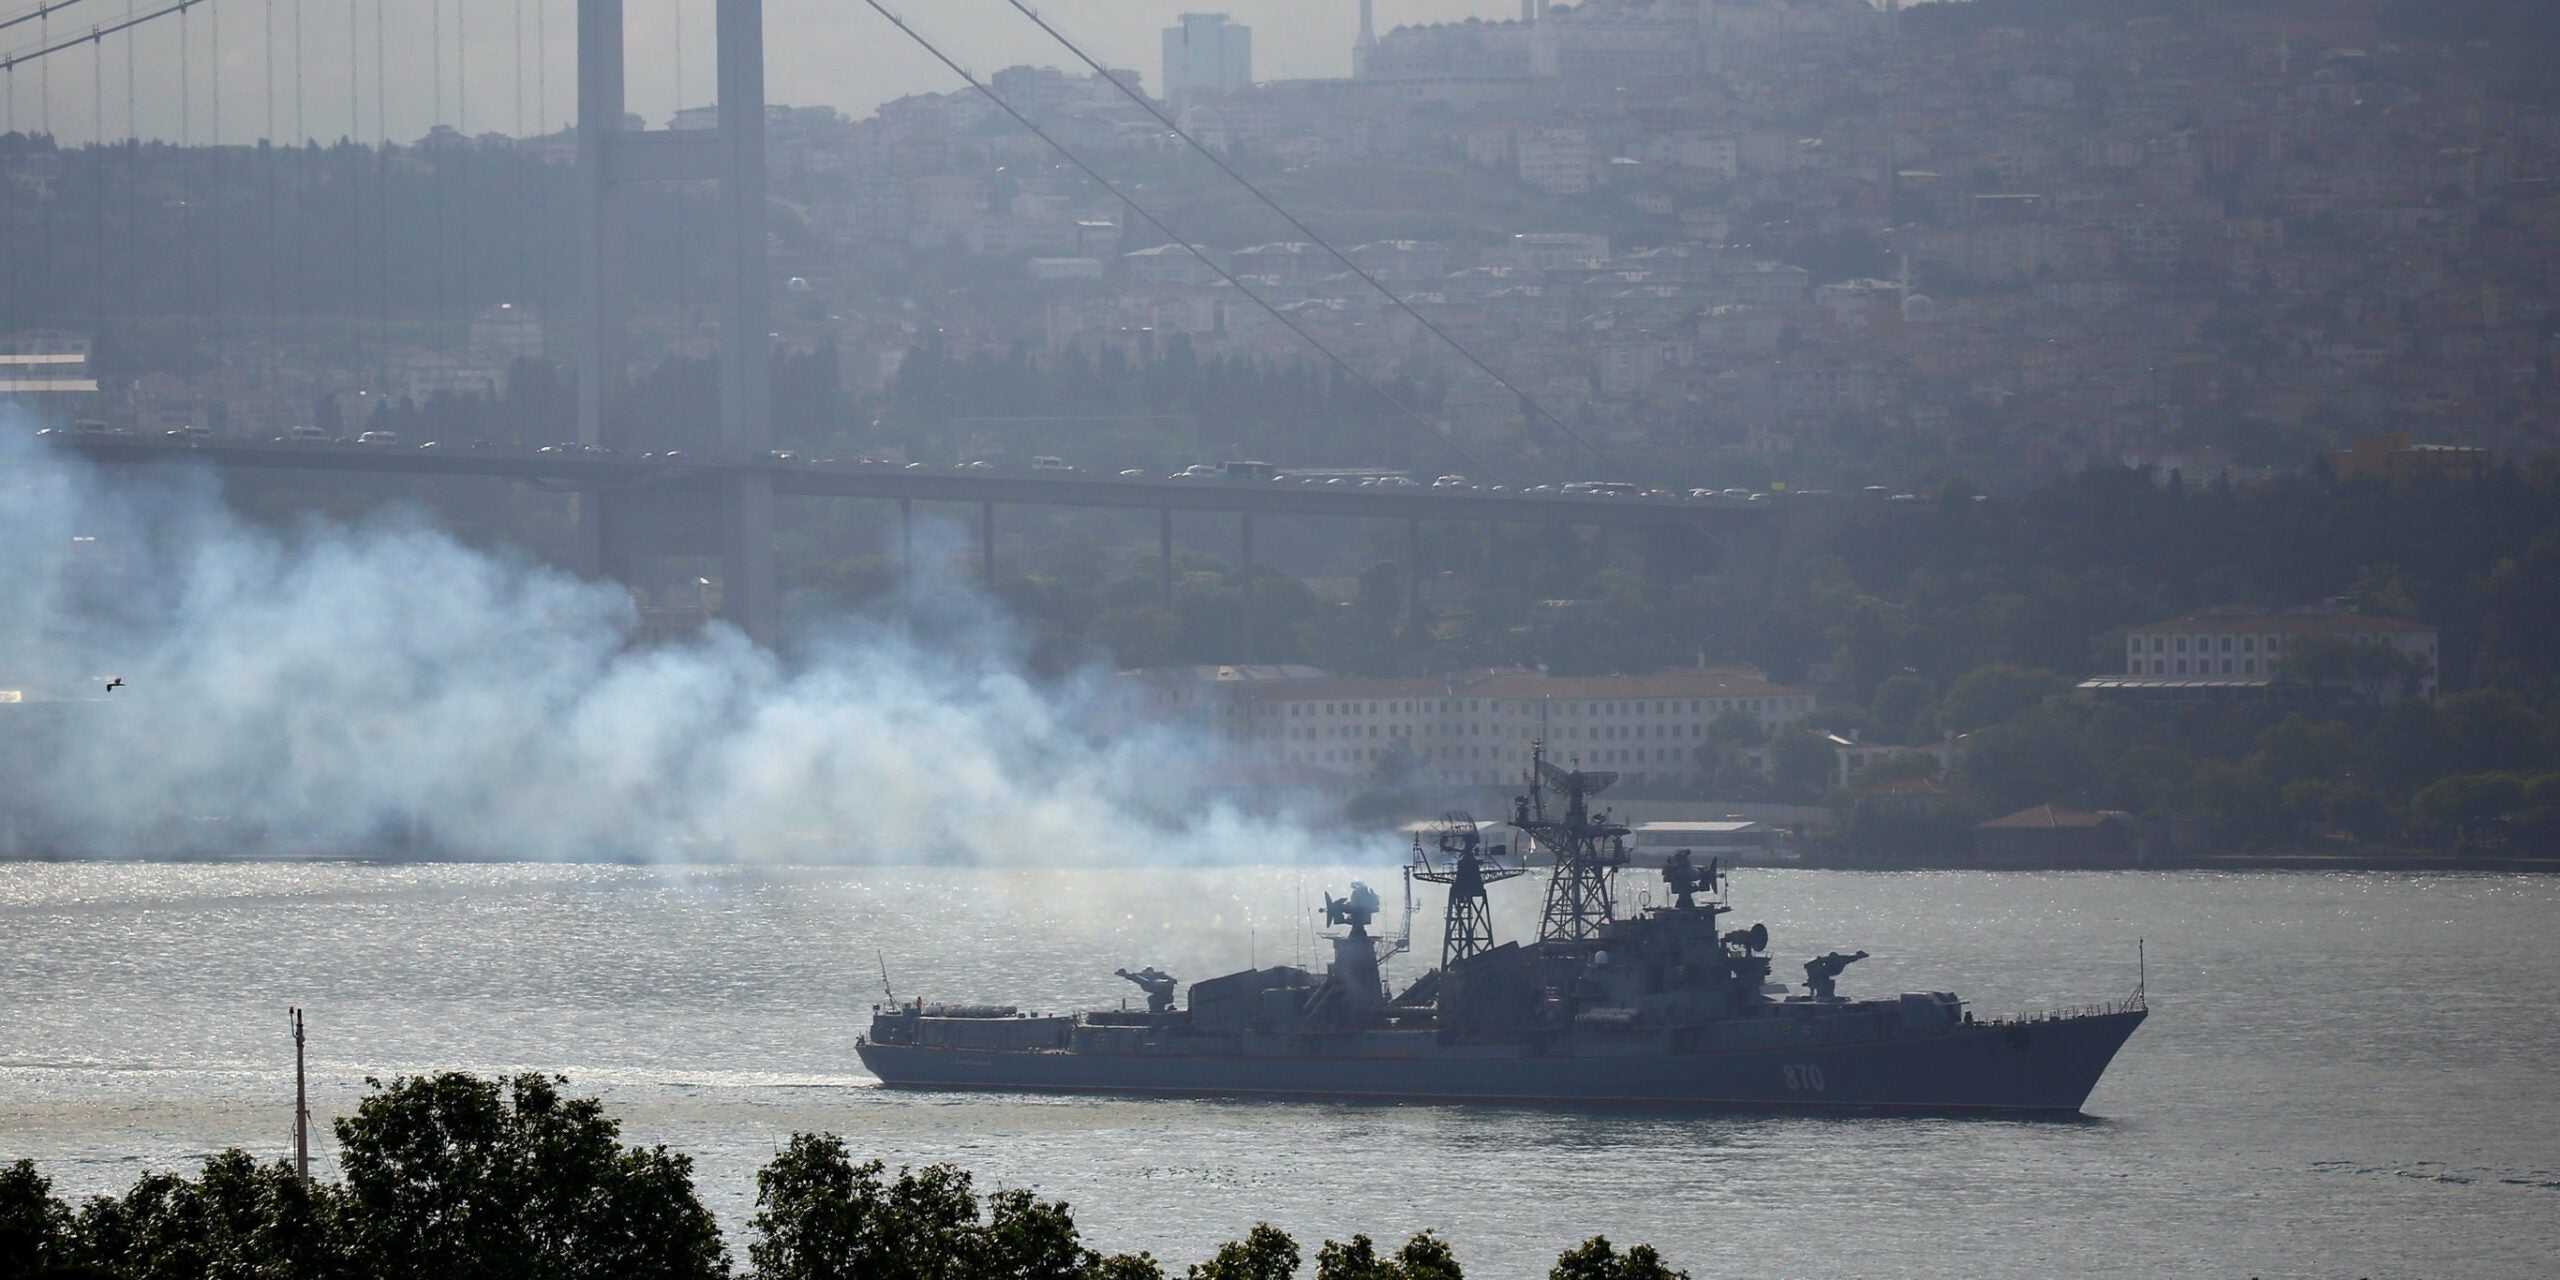 A Russian destroyer allegedly sailed into the line of fire during multinational shooting drills in the Black Sea